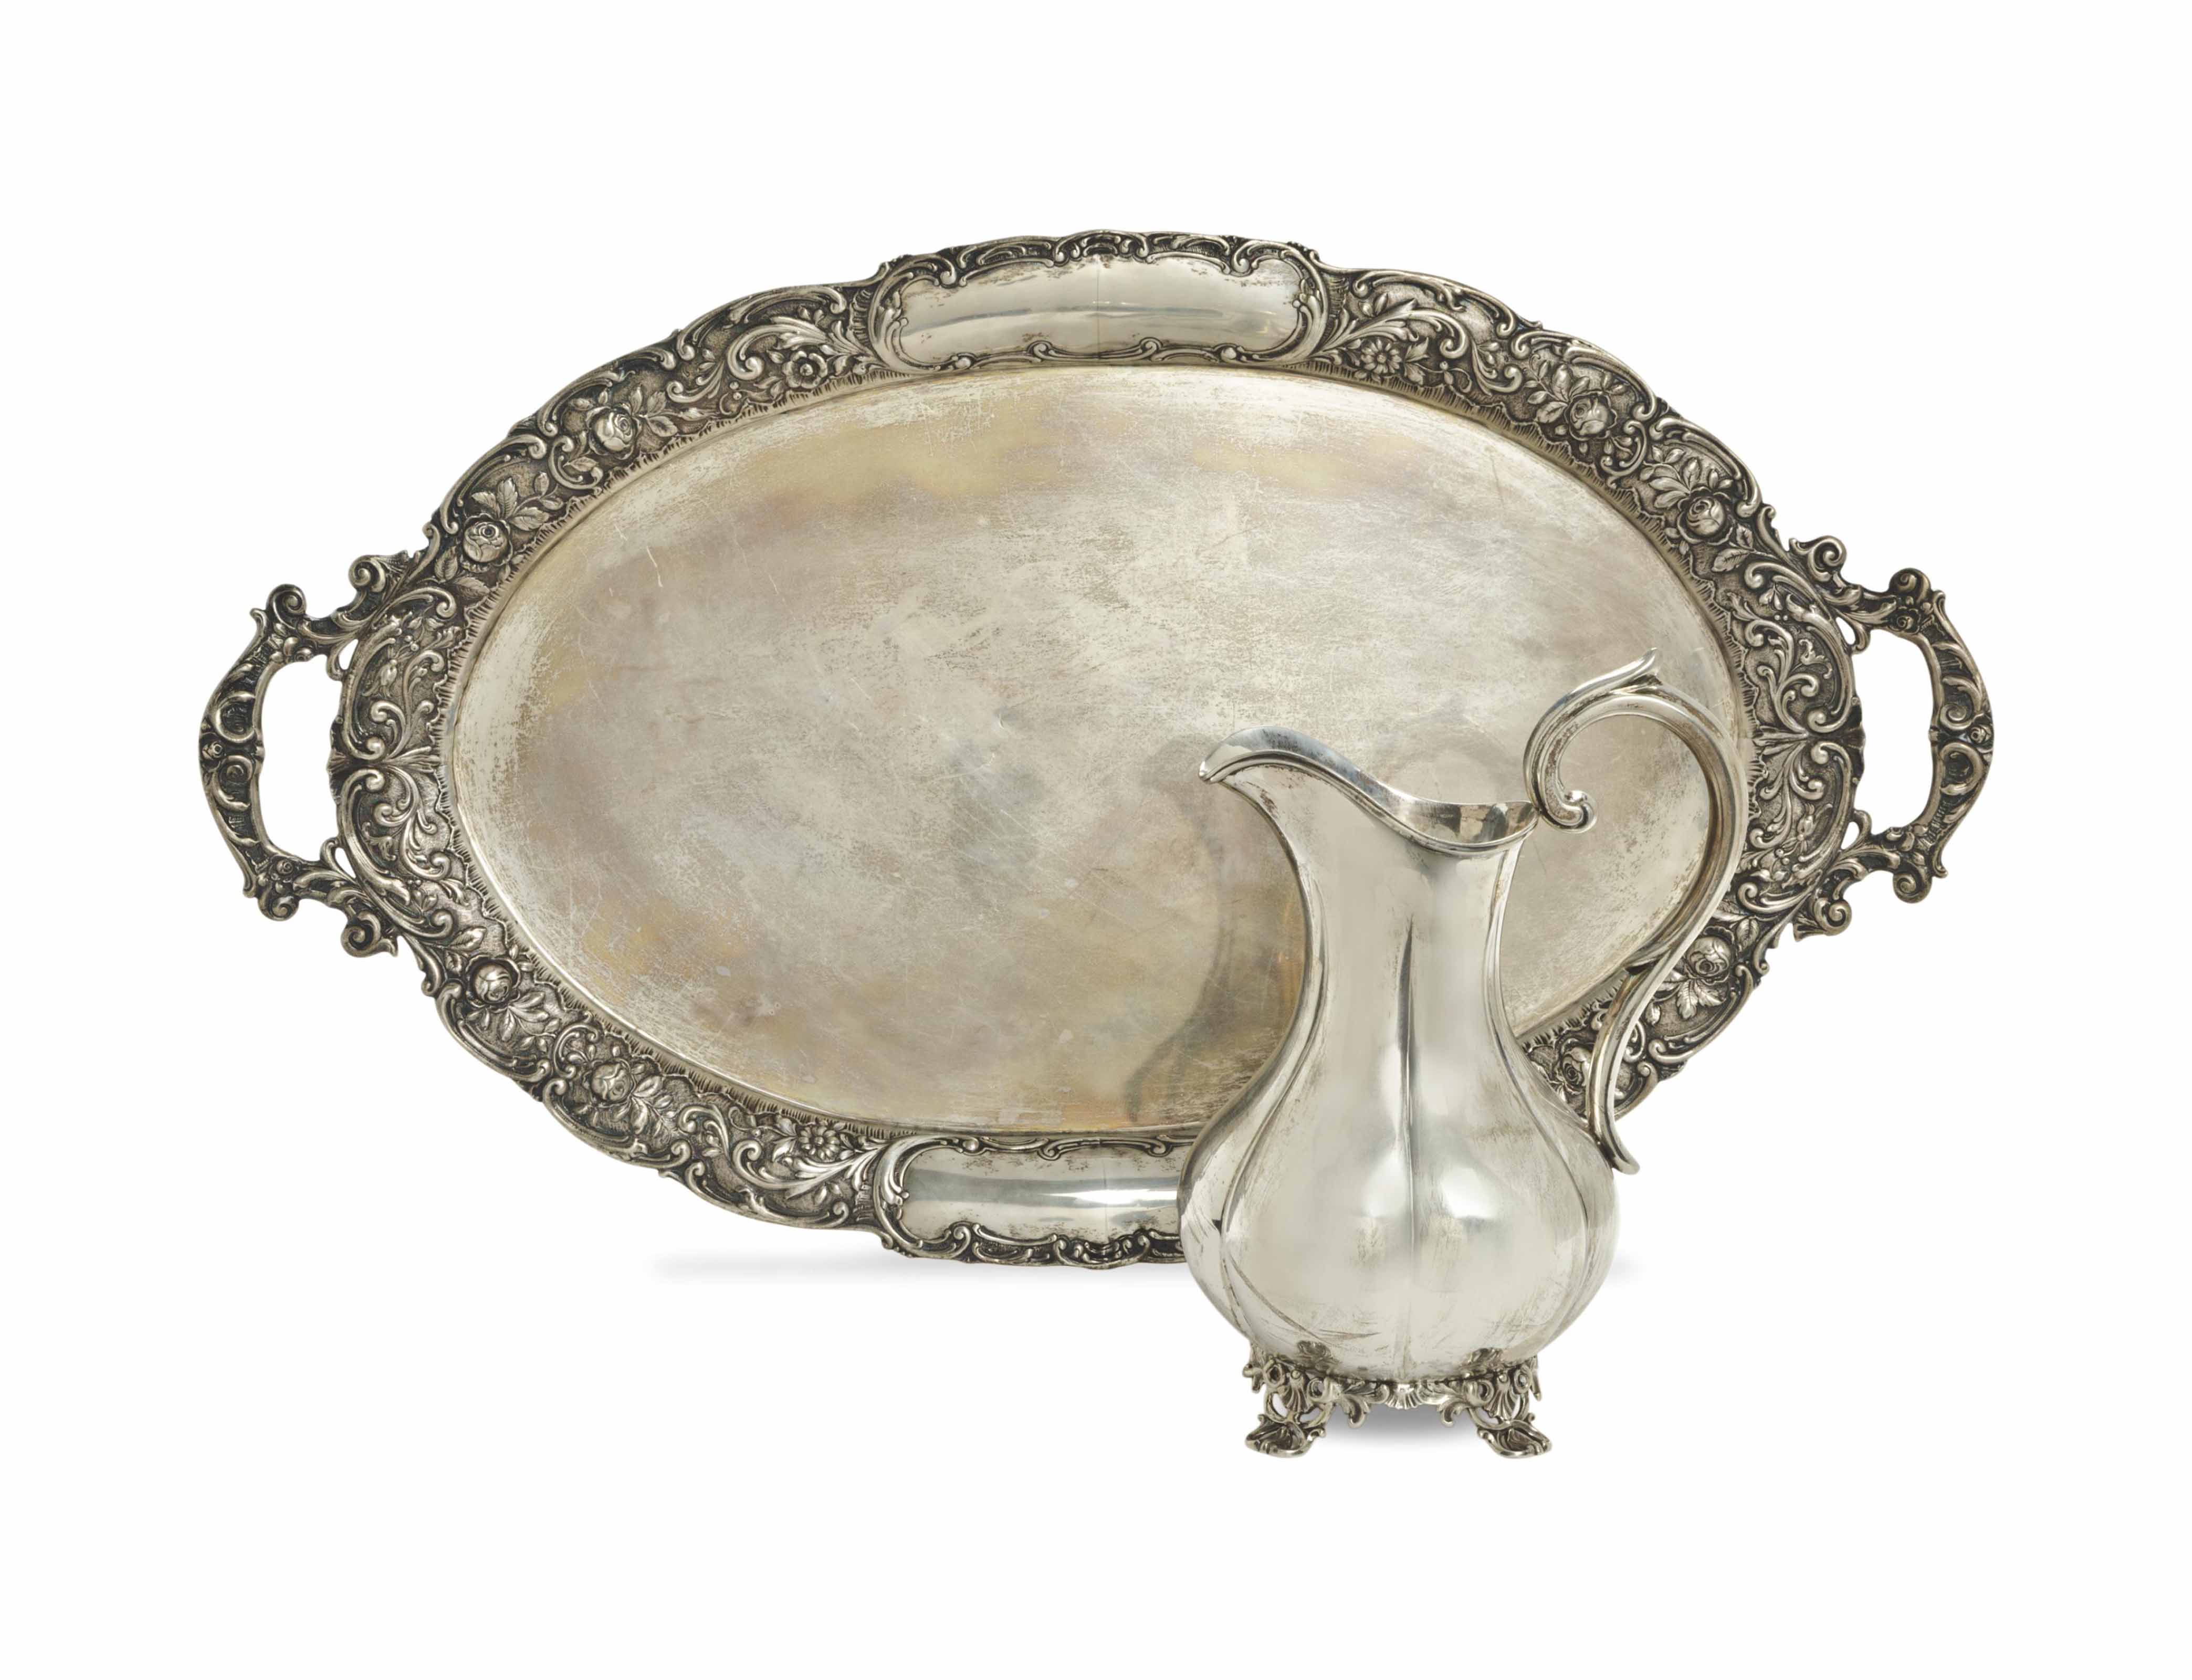 AN EARLY AMERICAN SILVER SHAPED WATER PITCHER, AND AN OVAL TWO HANDLED TRAY,